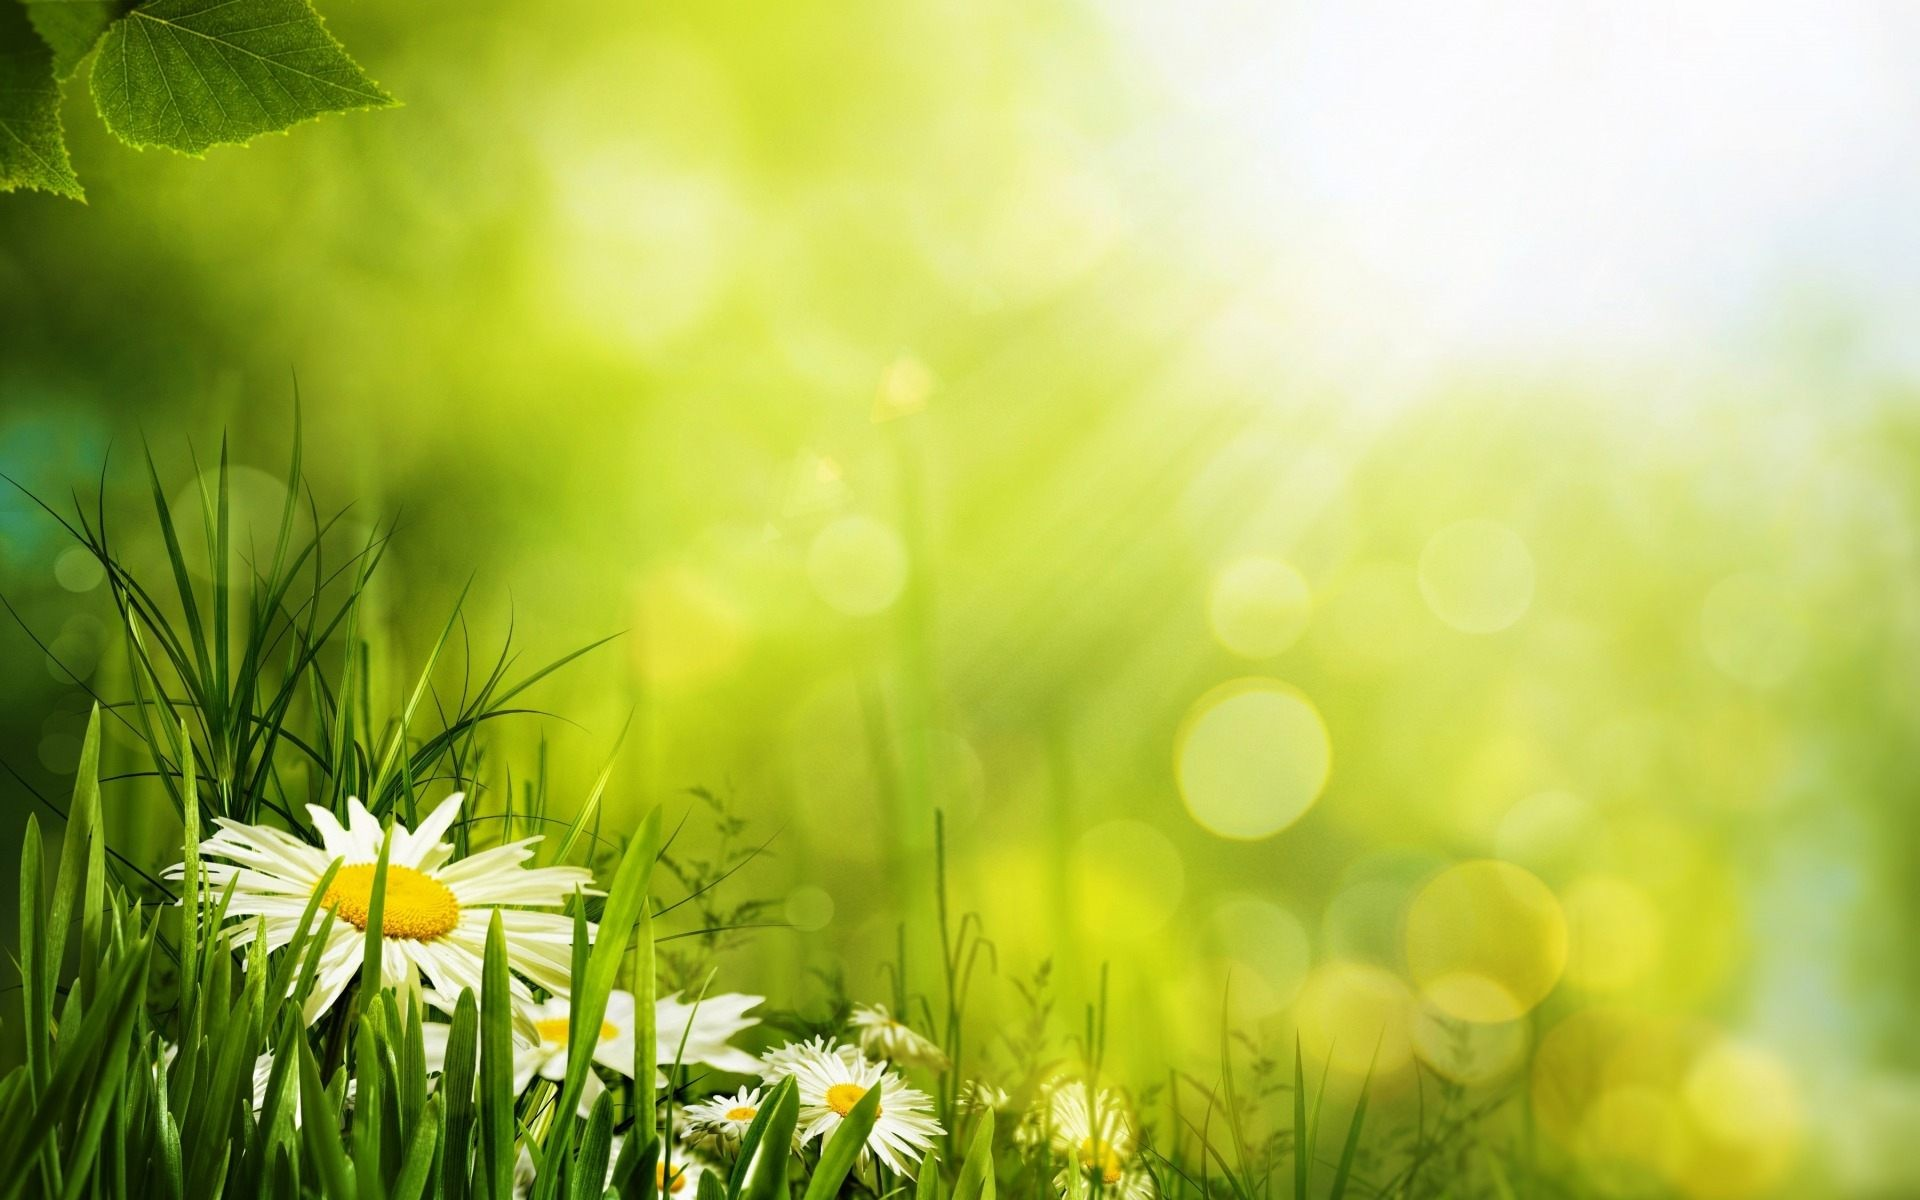 White Daisies Surrounded By Green Flower HD Wallpaper